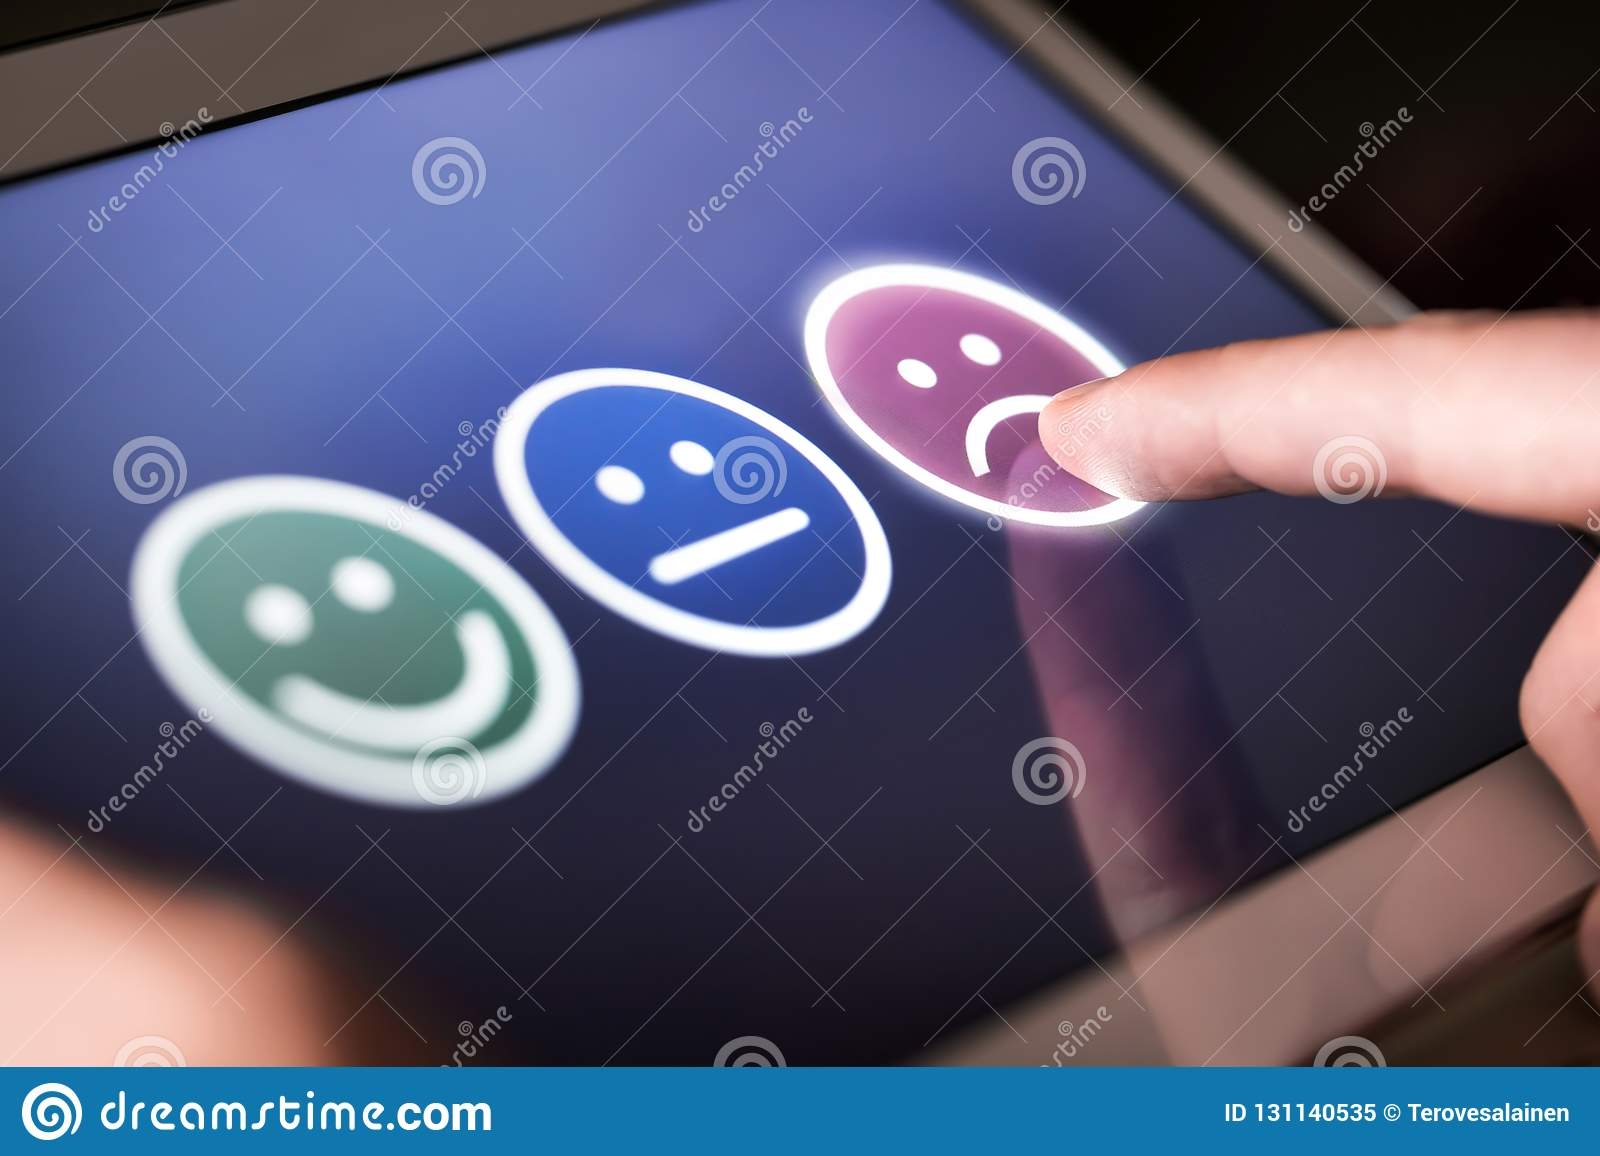 Unhappy and disappointed customer giving low rating and negative feedback in survey.